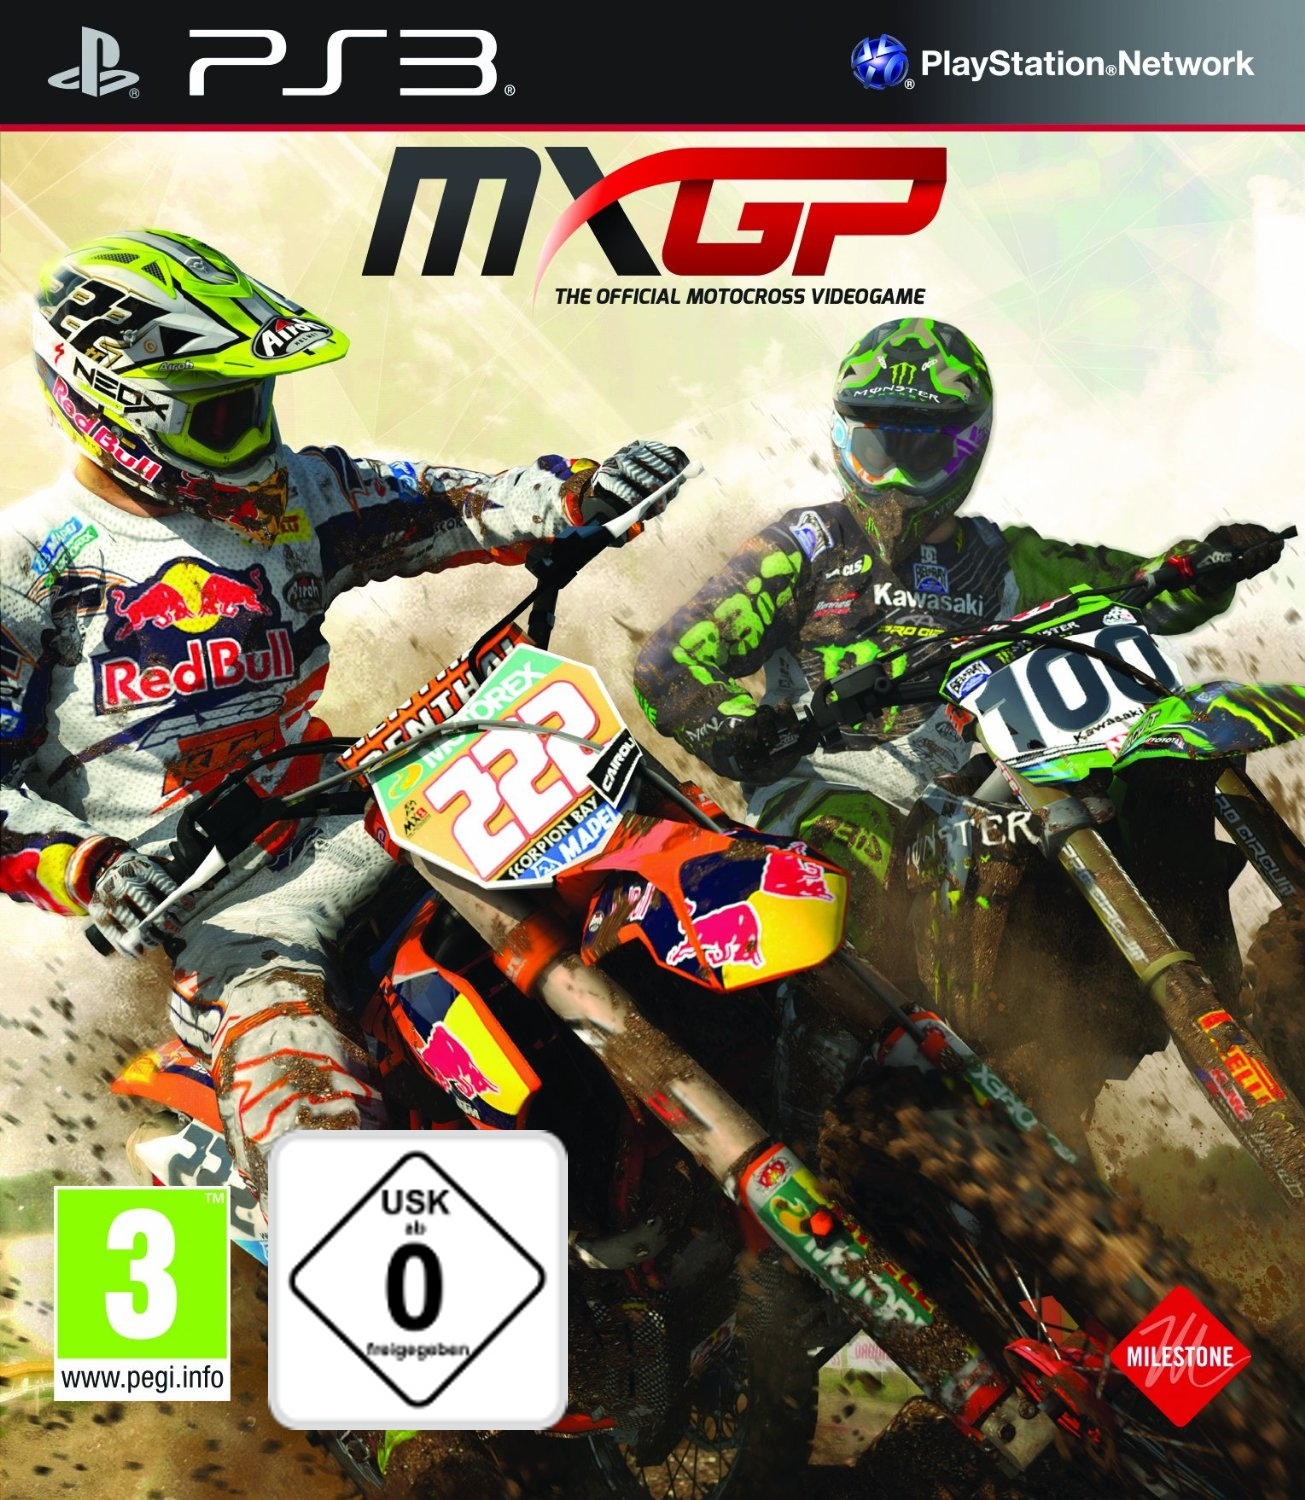 ps3 mx gp die offizielle motocross simulation mxgp neu ovp. Black Bedroom Furniture Sets. Home Design Ideas